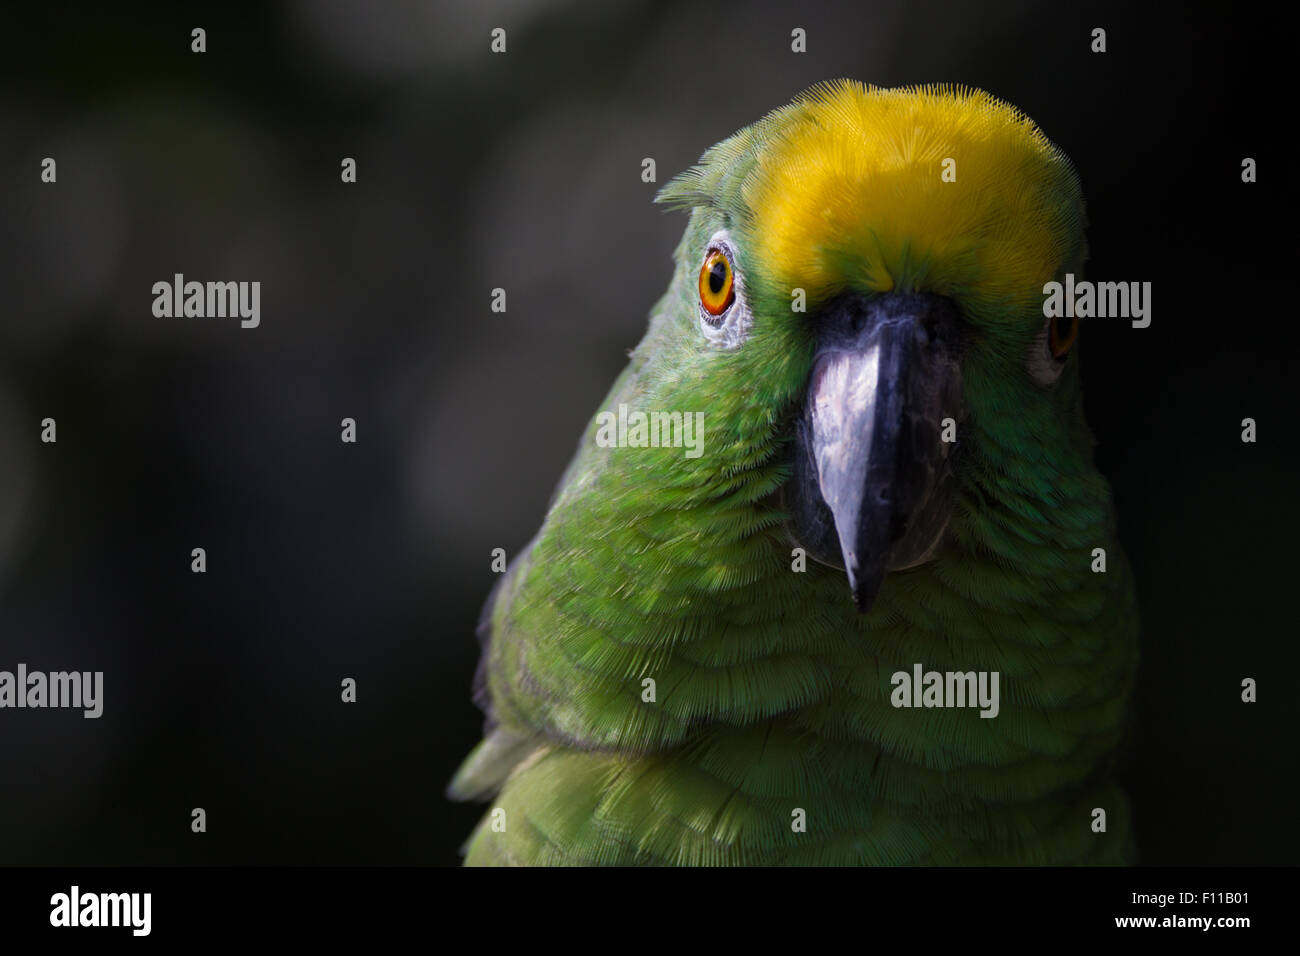 Closeup of yellow crowned amazon parrot of South America - Stock Image